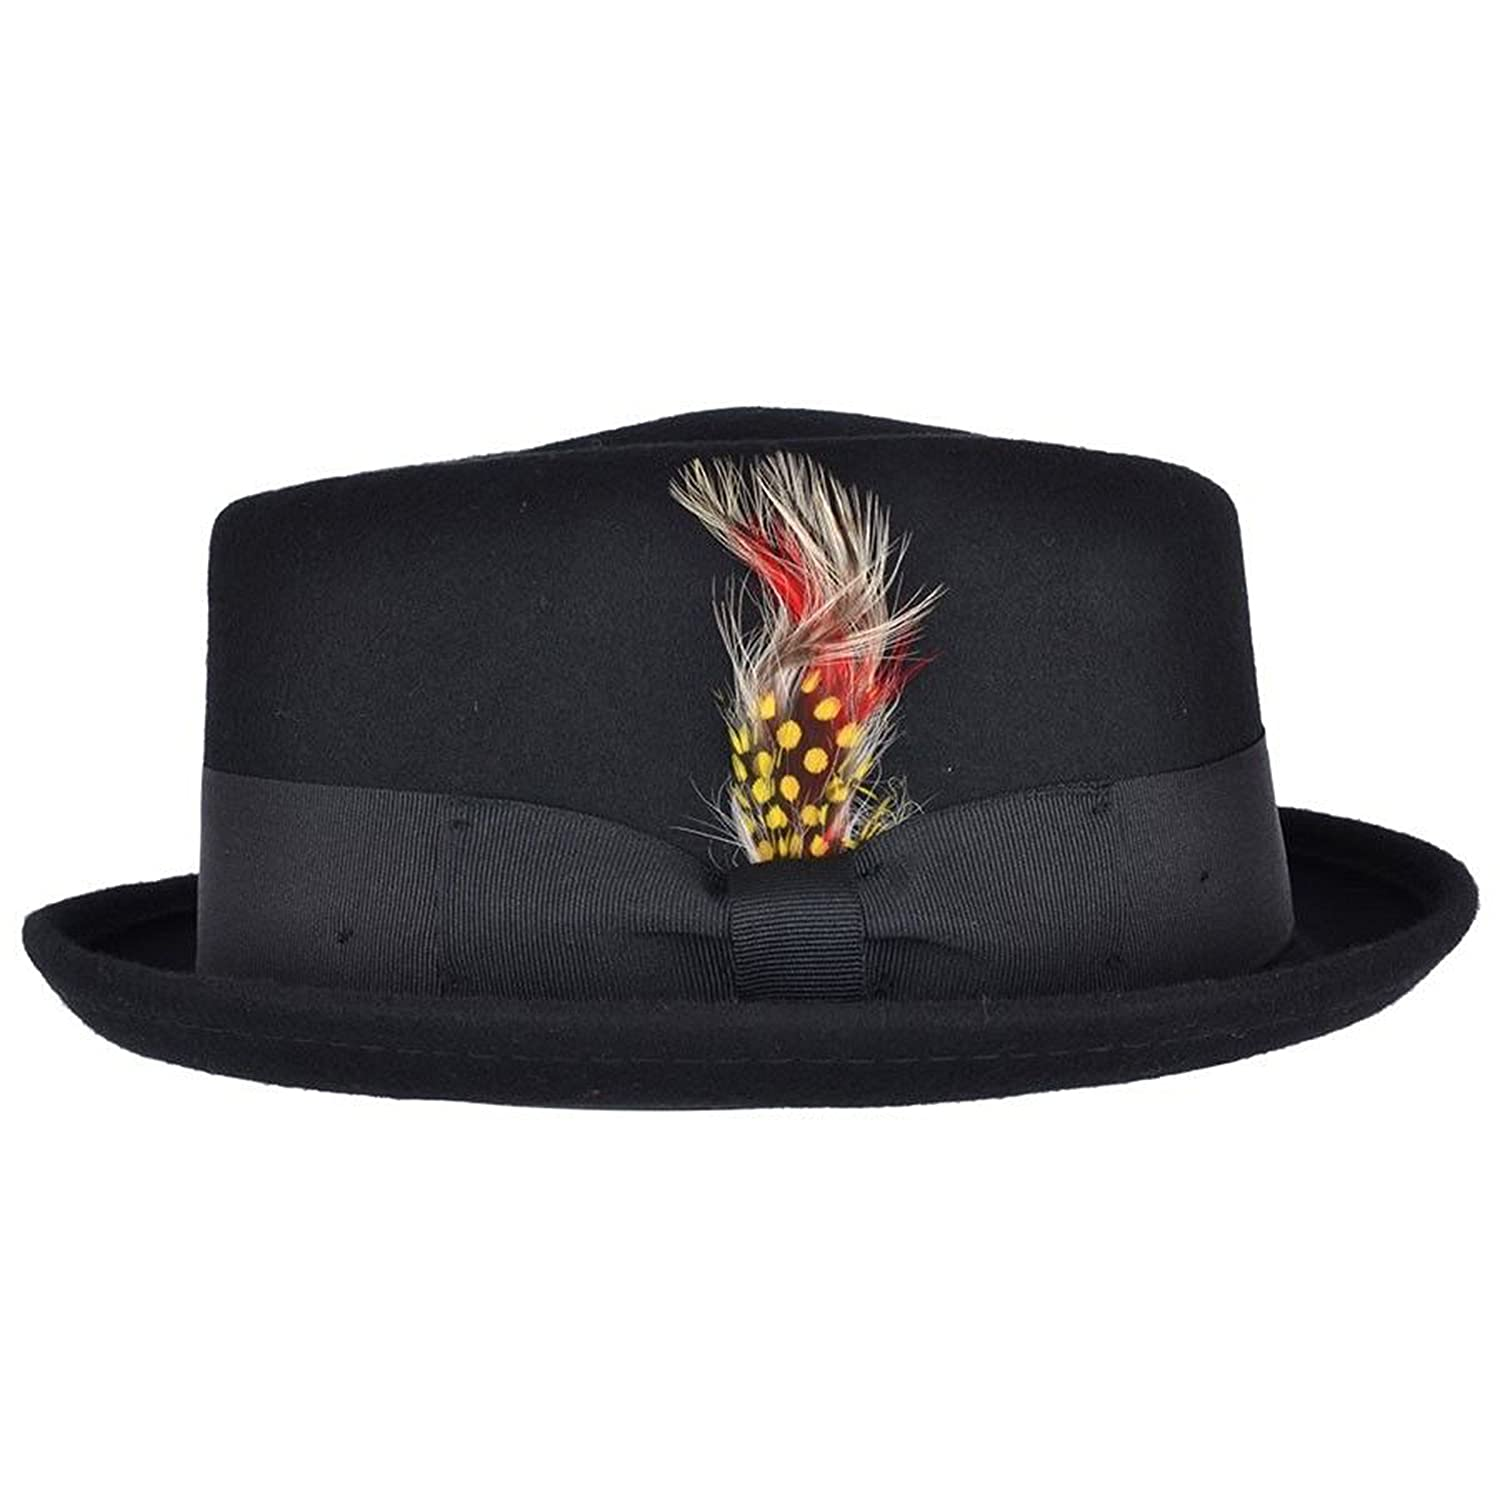 Unisex Superb Foldable Pork Pie Trilby Hat with Removable Feather and Matching Band 100/% Wool Hand Made Diamond Crown Black